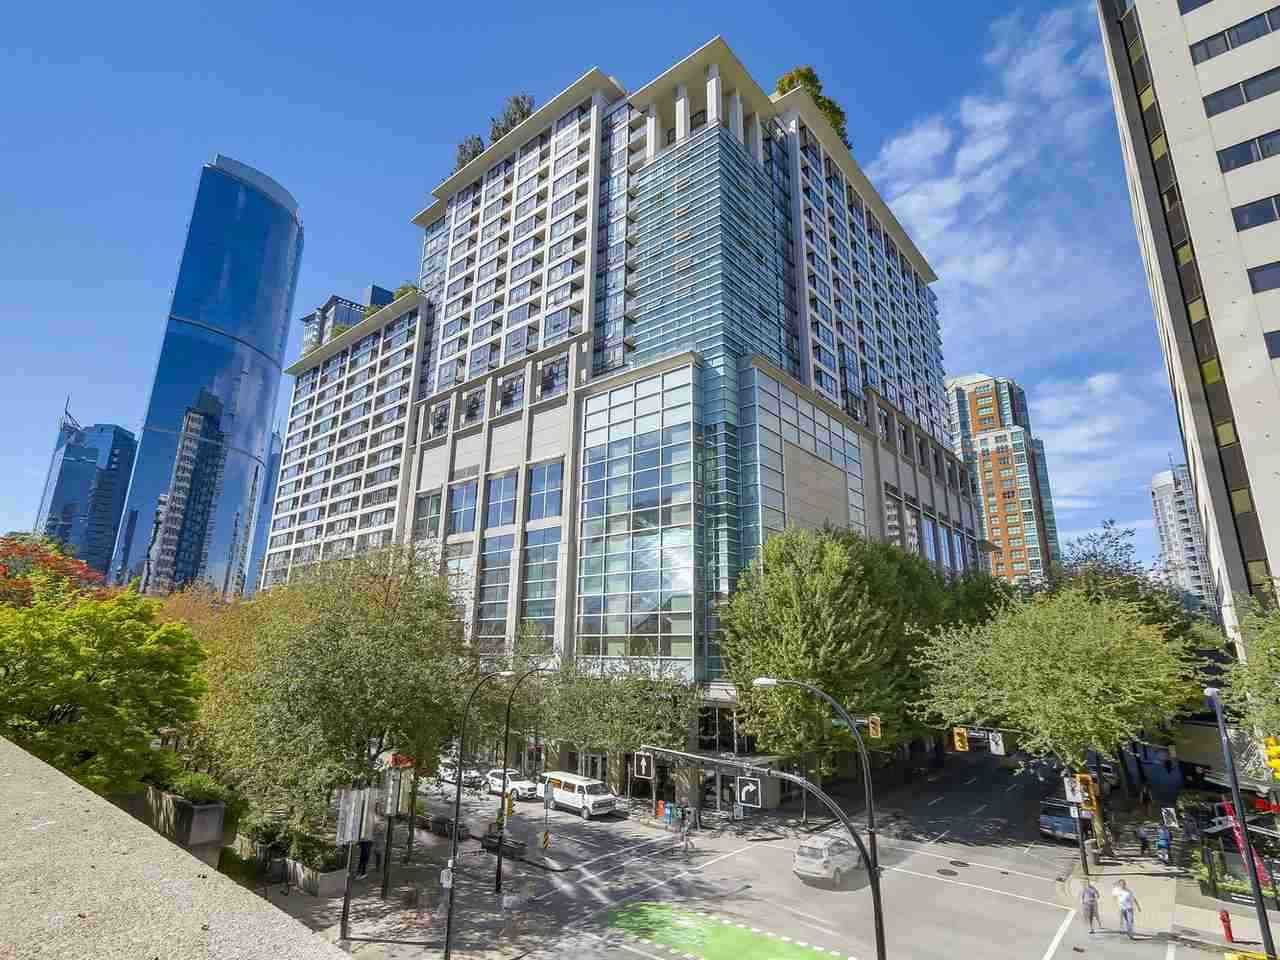 """Main Photo: 2201 938 SMITHE Street in Vancouver: Downtown VW Condo for sale in """"ELECTRIC AVE"""" (Vancouver West)  : MLS®# R2477360"""